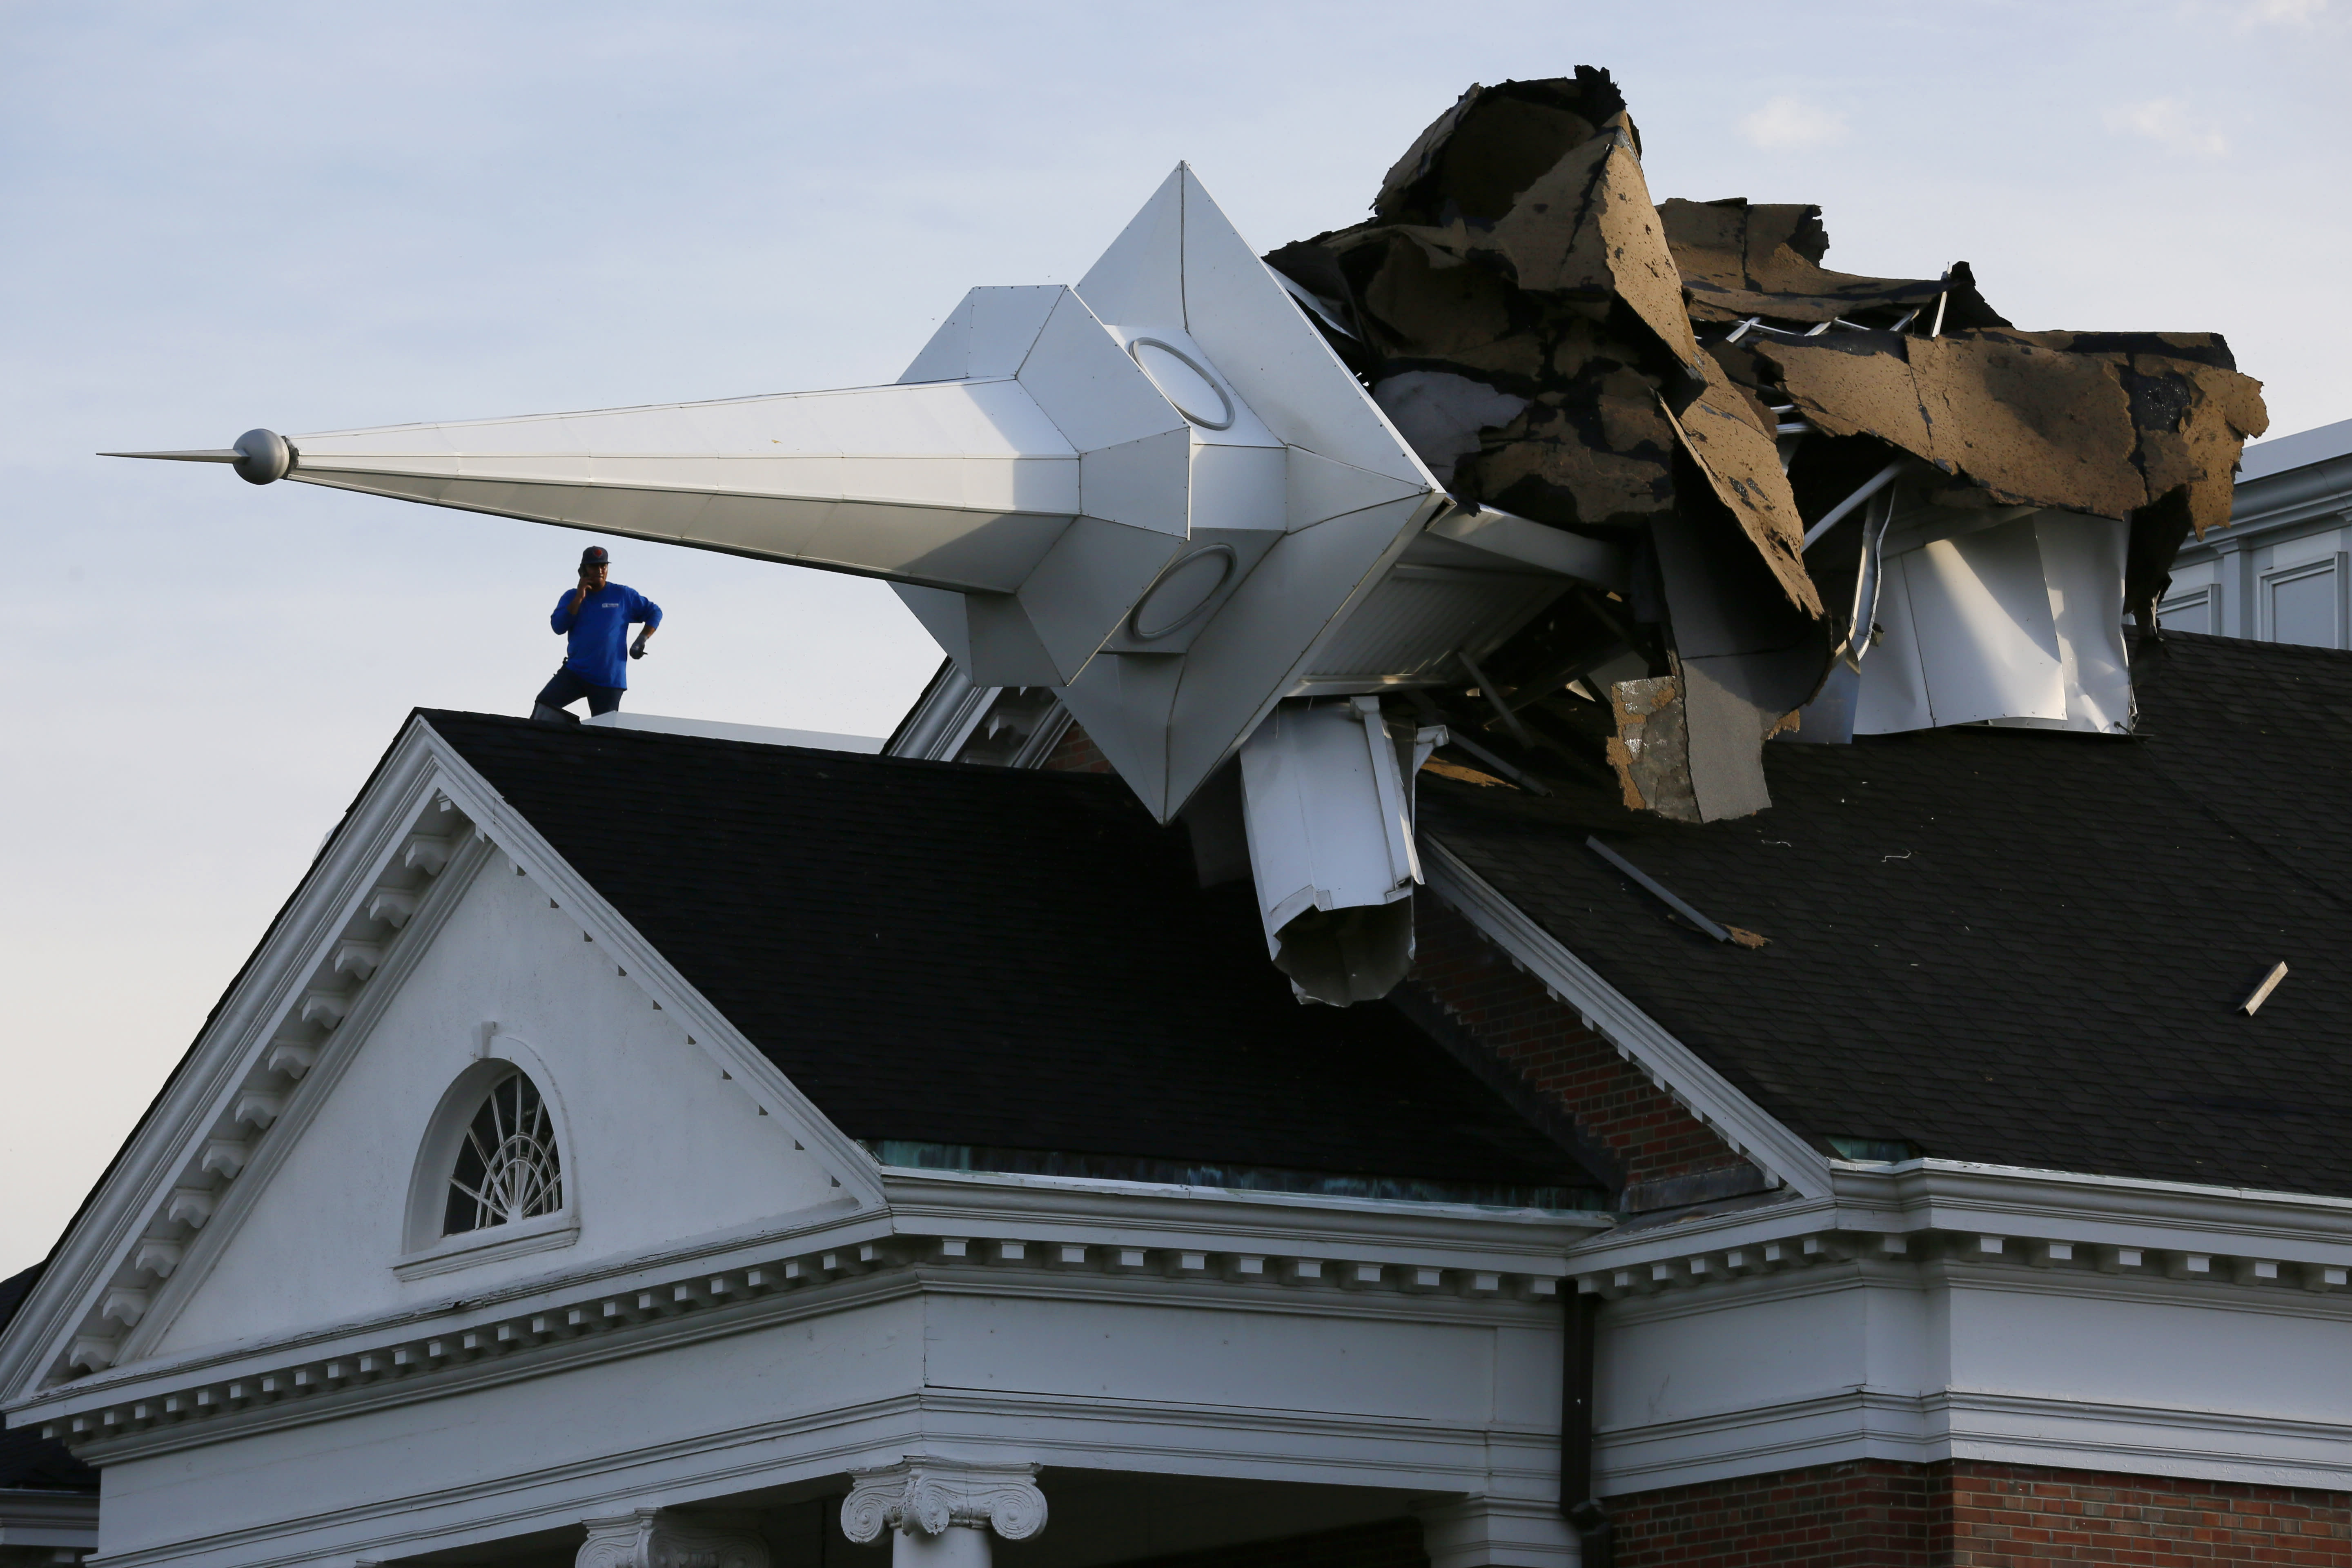 A person surveys the damage from the roof of College Church in Wheaton, Ill., after a severe storm toppled the church steeple on the campus of Wheaton College, Monday, Aug. 10, 2020. (Mark Hume/Chicago Tribune via AP)